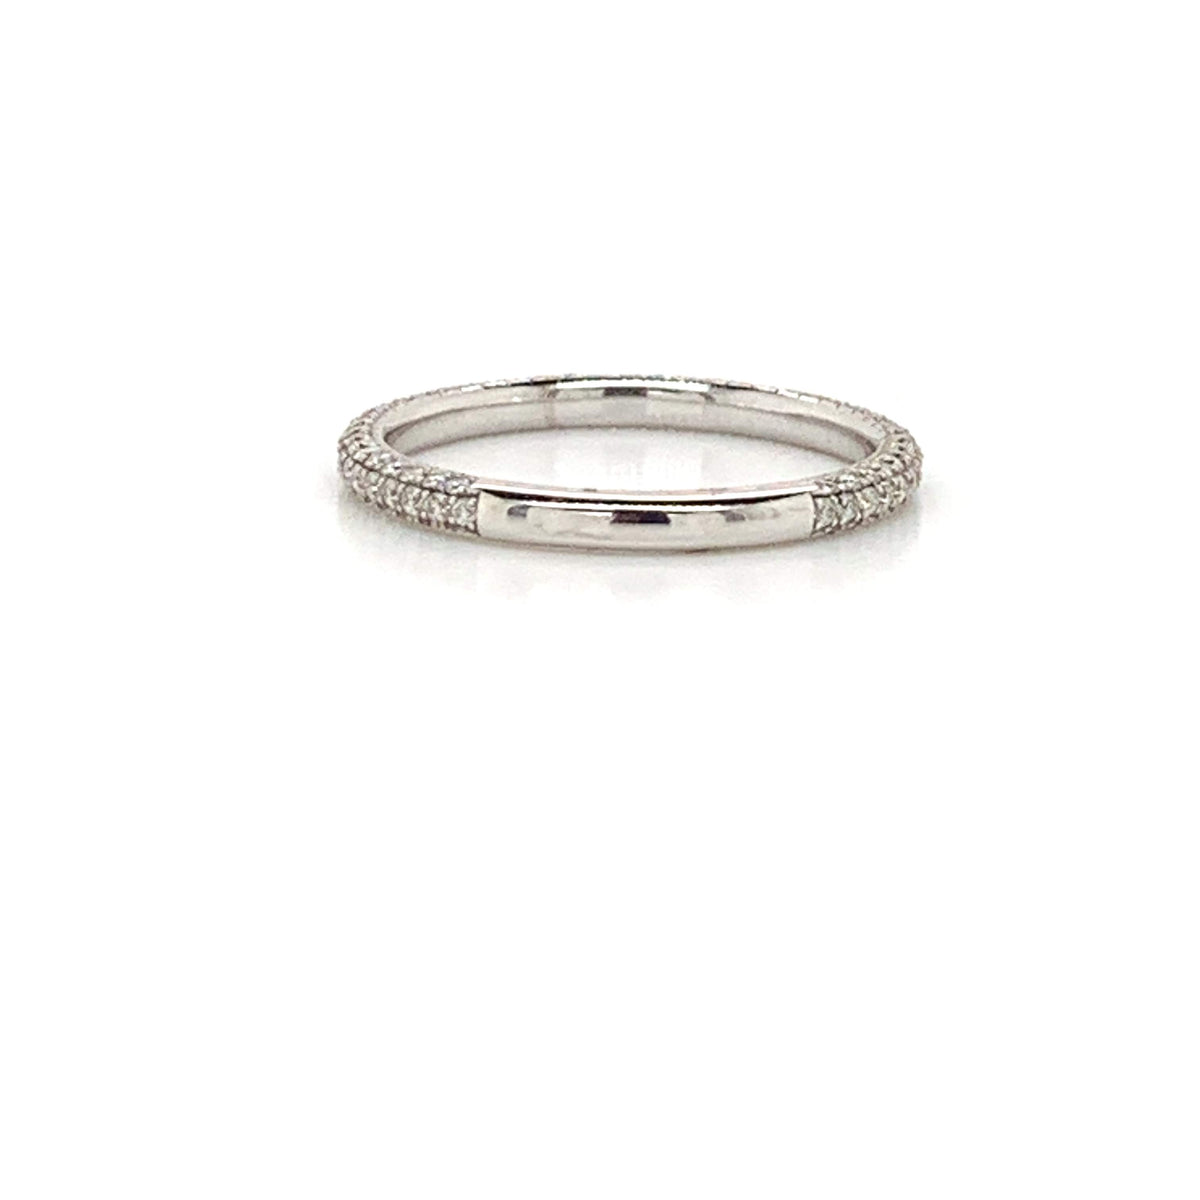 WBM0101 ~ MOISSANITE ~ 3 EDGE WEDDING BAND